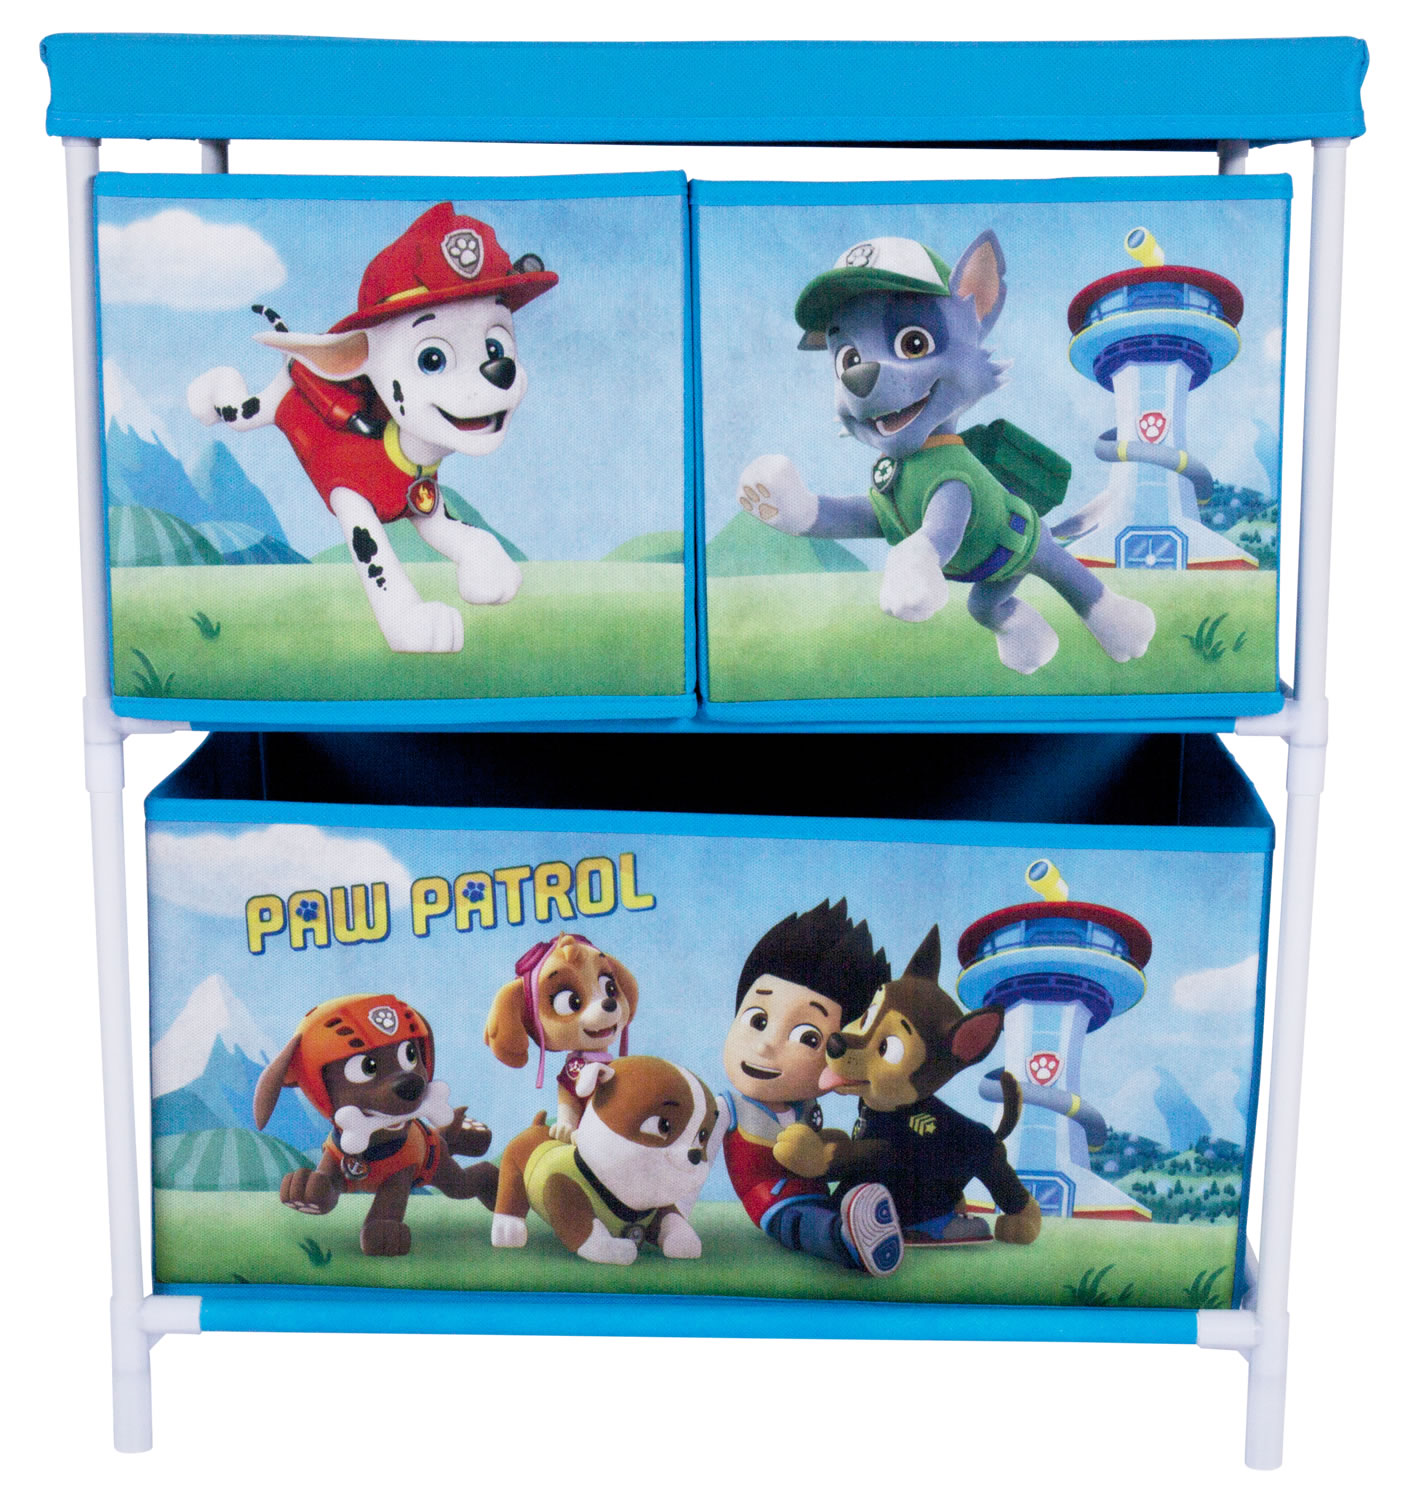 Paw Patrol Toy Organizer Bin Cubby Kids Child Storage Box: Paw Patrol Kids Toy Storage Unit 2 Tier 3 Drawer Organiser